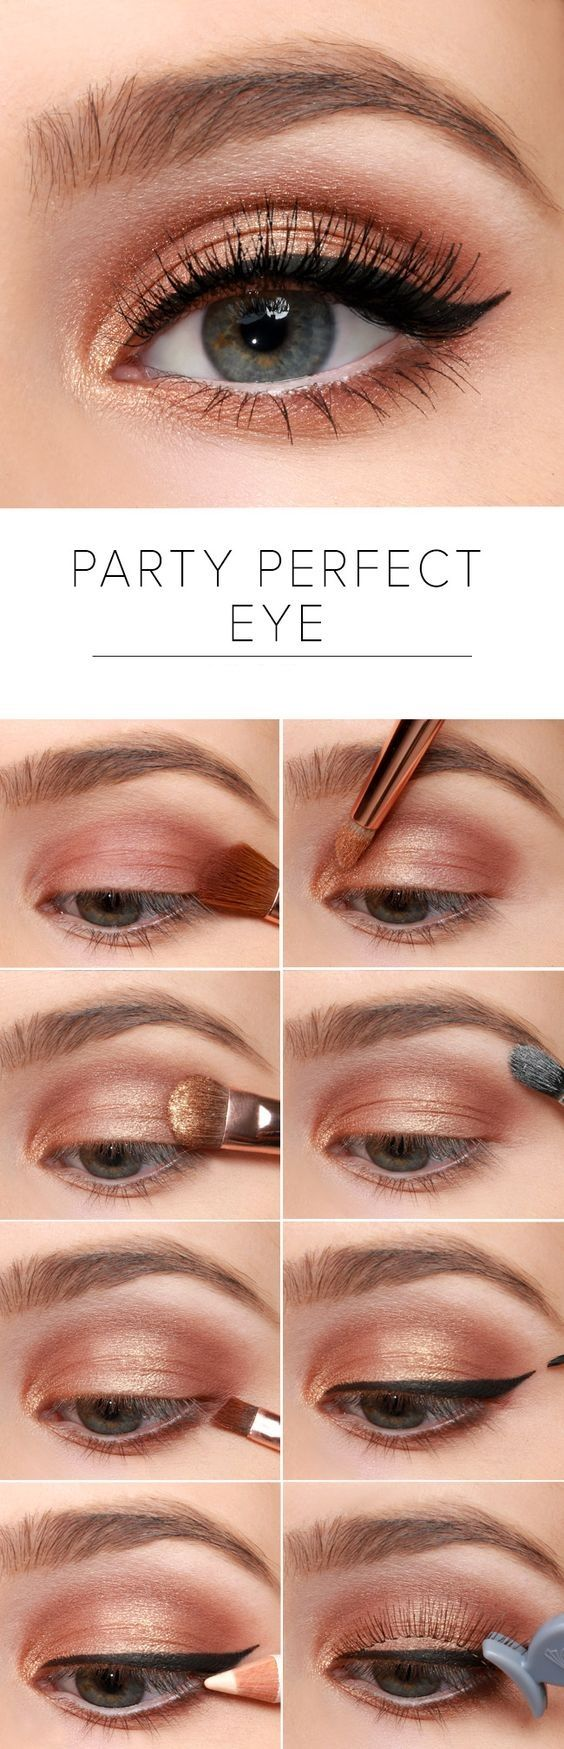 Soft Eye Makeup Looks For Engagement Party / Wedding   party Makeup Perfect